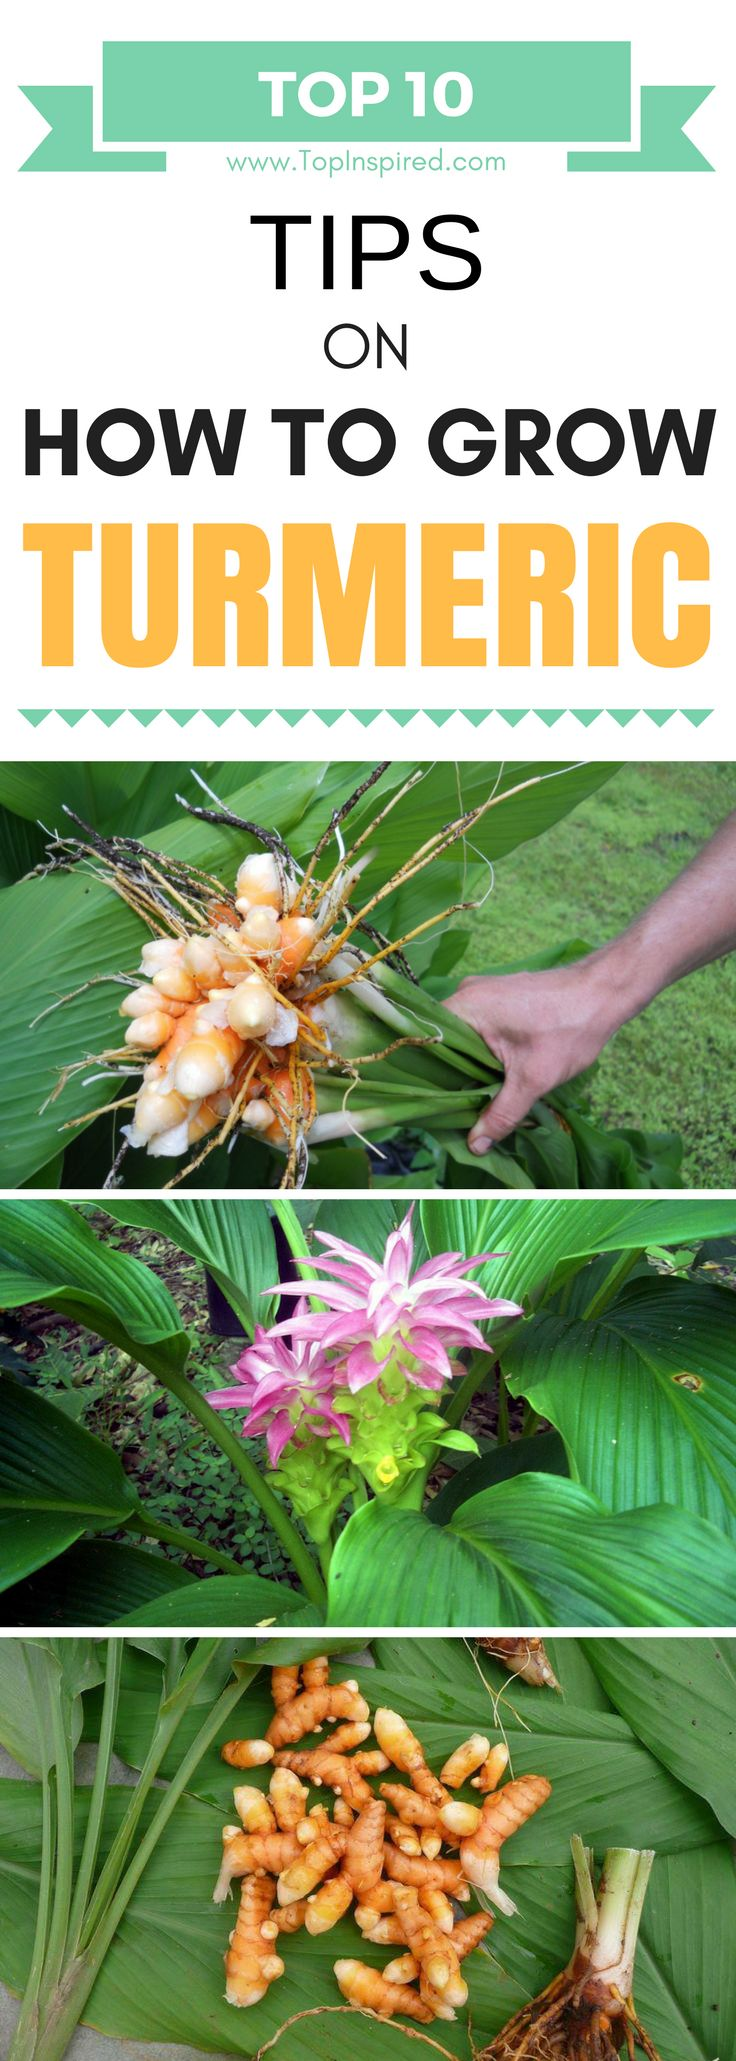 TOP 10 Tips On How To Grow Your Own Turmeric – Flowers & Plants